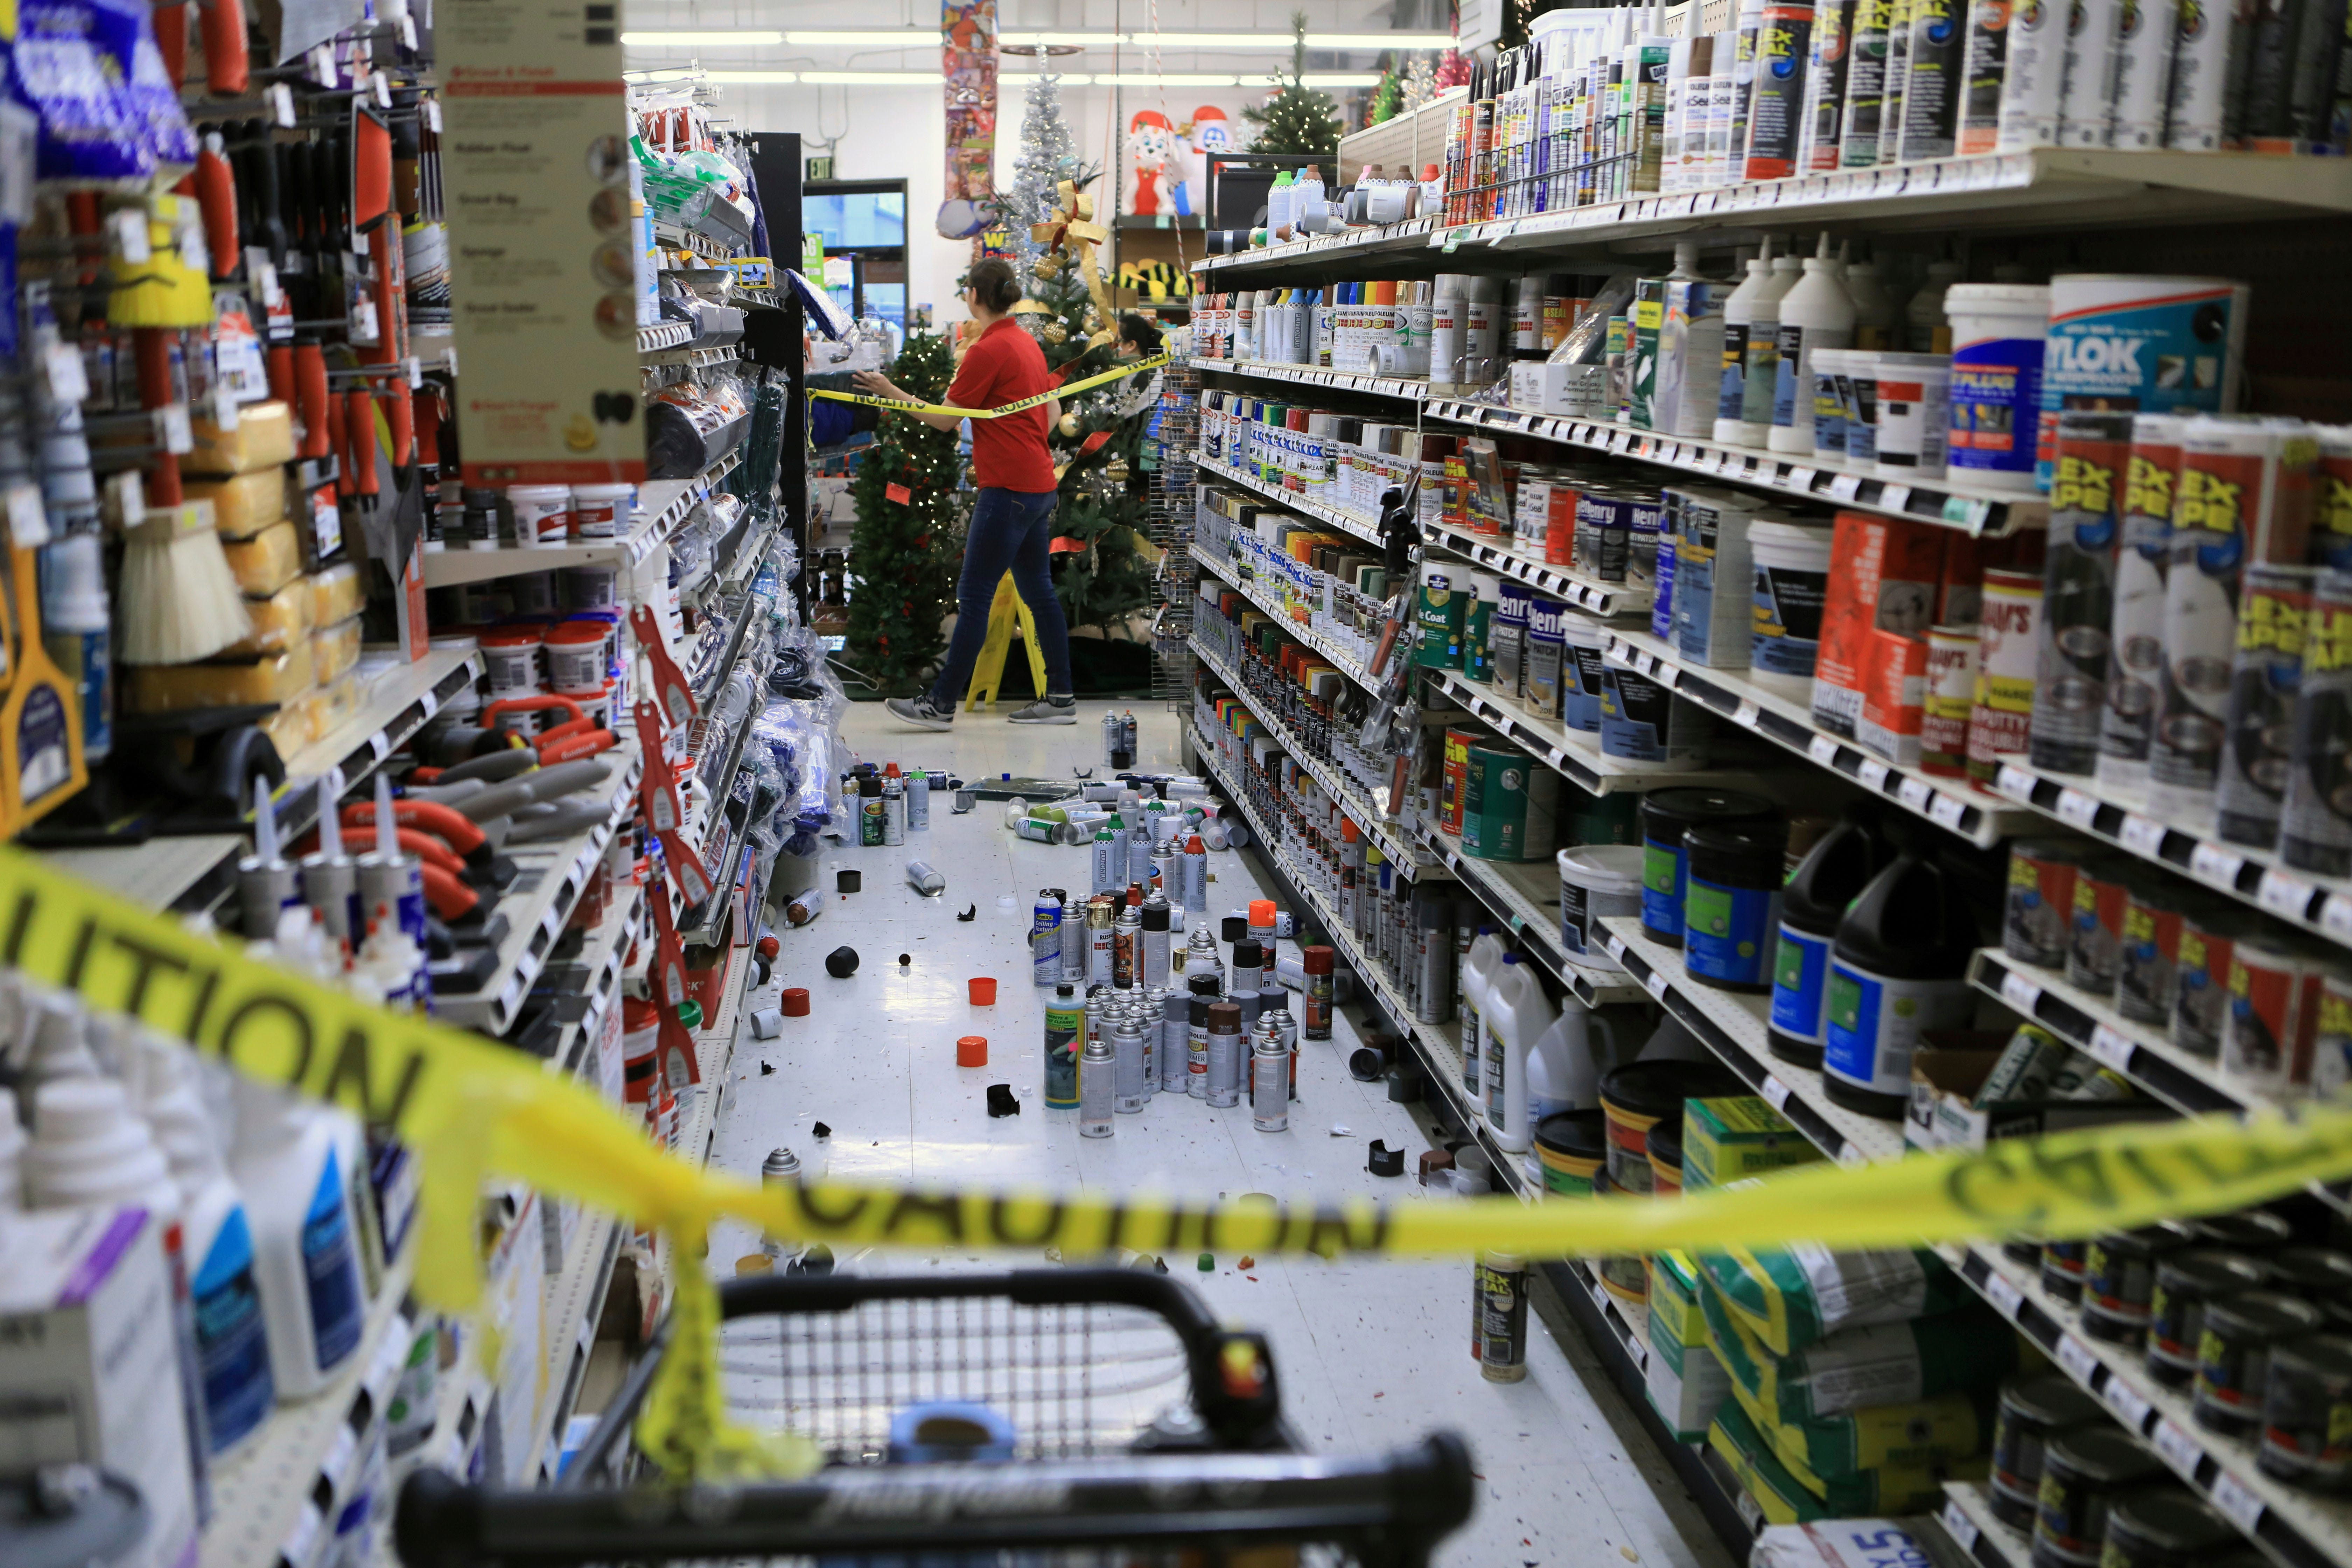 An employee walks past a damaged aisle at Anchorage True Value hardware store after an earthquake, Friday morning, Nov. 30, 2018, in Anchorage, Alaska. Tim Craig, owner of the south Anchorage store, said no one was injured but hundreds of items hit the floor and two shelves collapsed in a stock room.